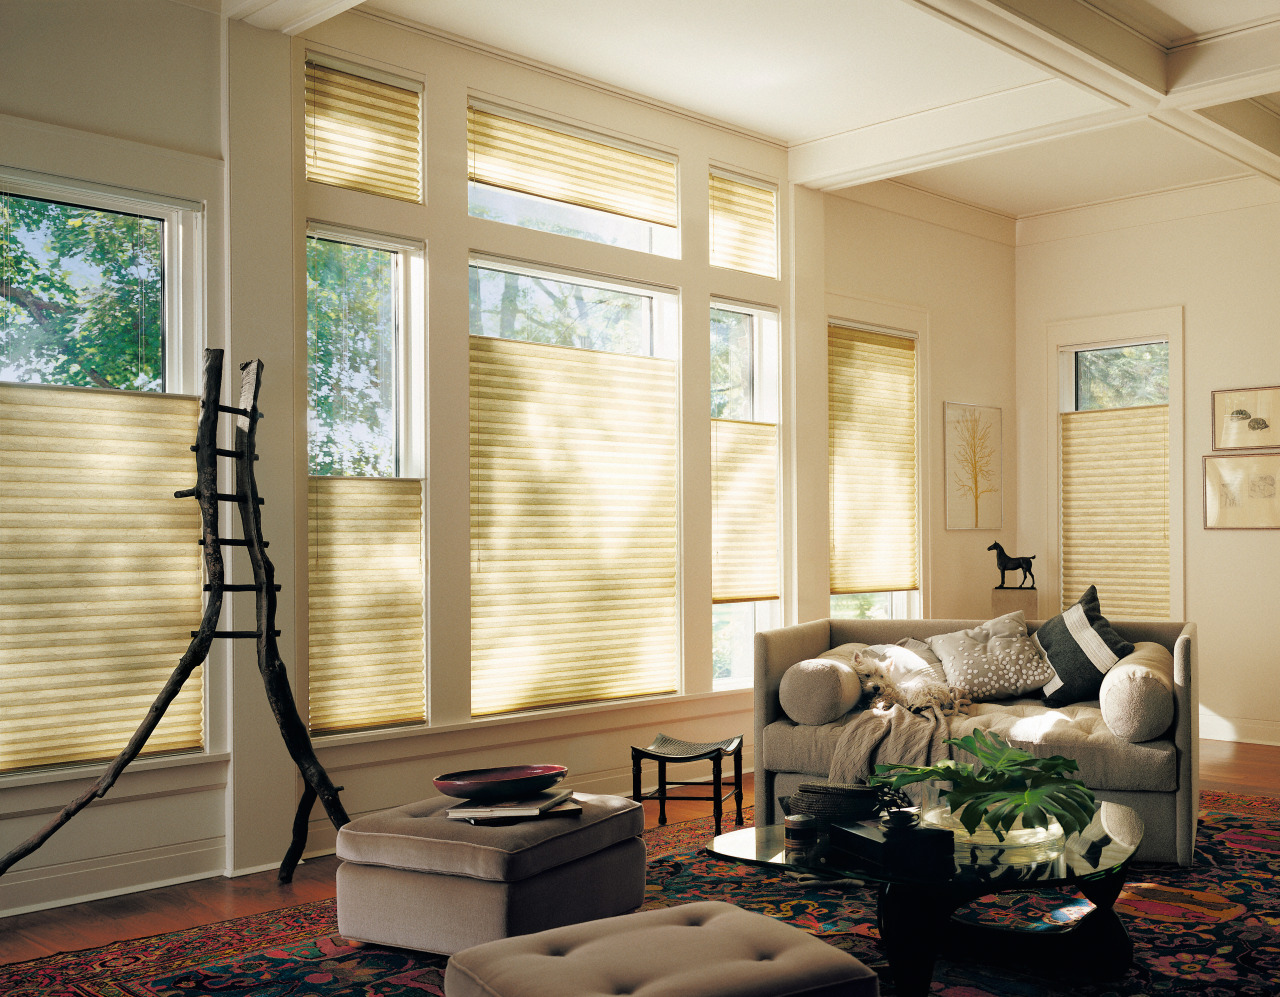 Honeycomb blinds retained more than 60 percent ceiling, daylighting, floor, home, interior design, living room, room, shade, wall, window, window blind, window covering, window treatment, wood